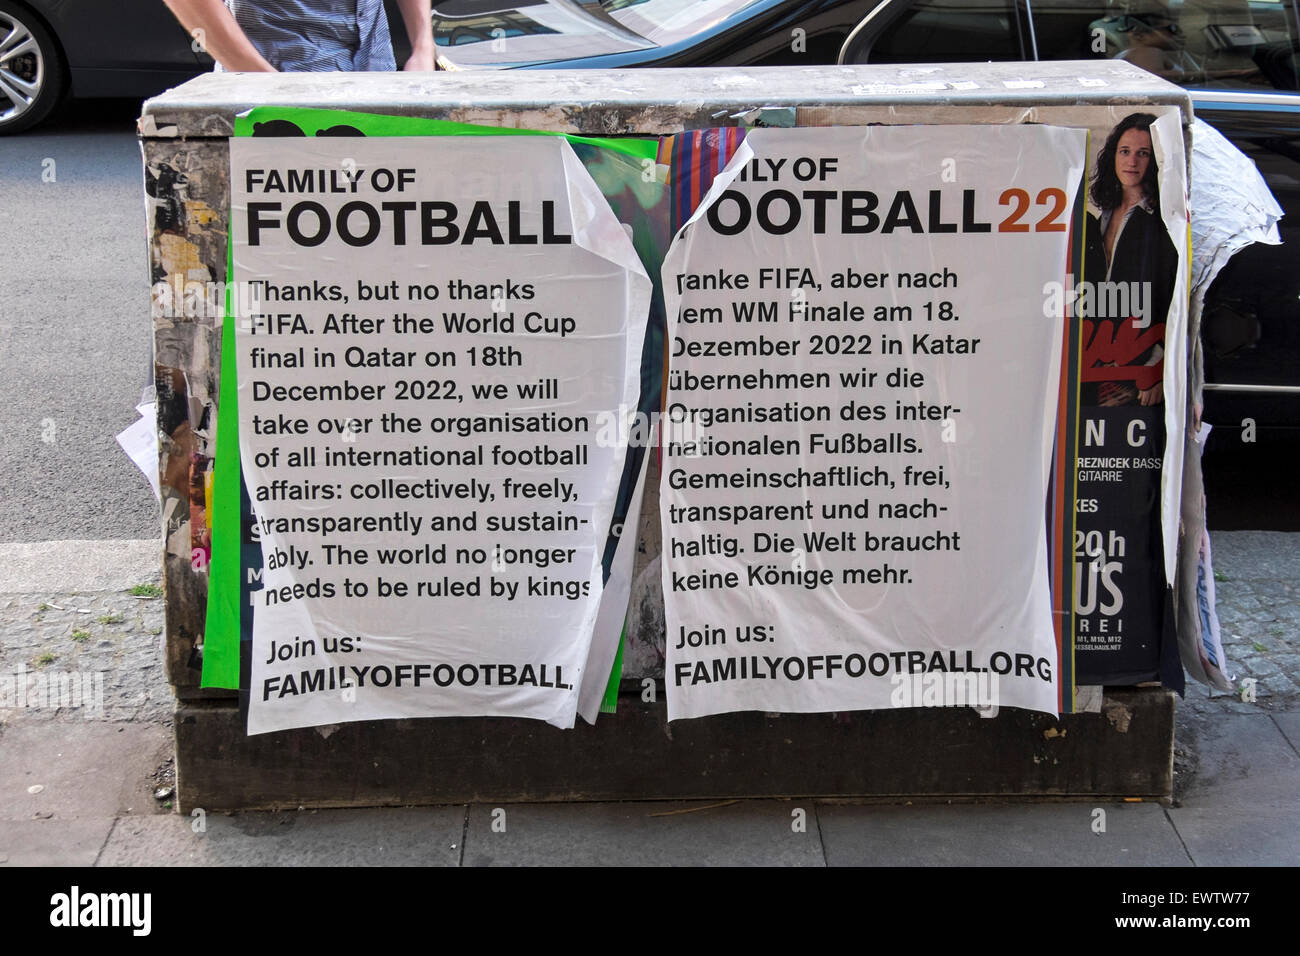 Family of Football poster objects to Football ruling body, FIFA - Stock Image